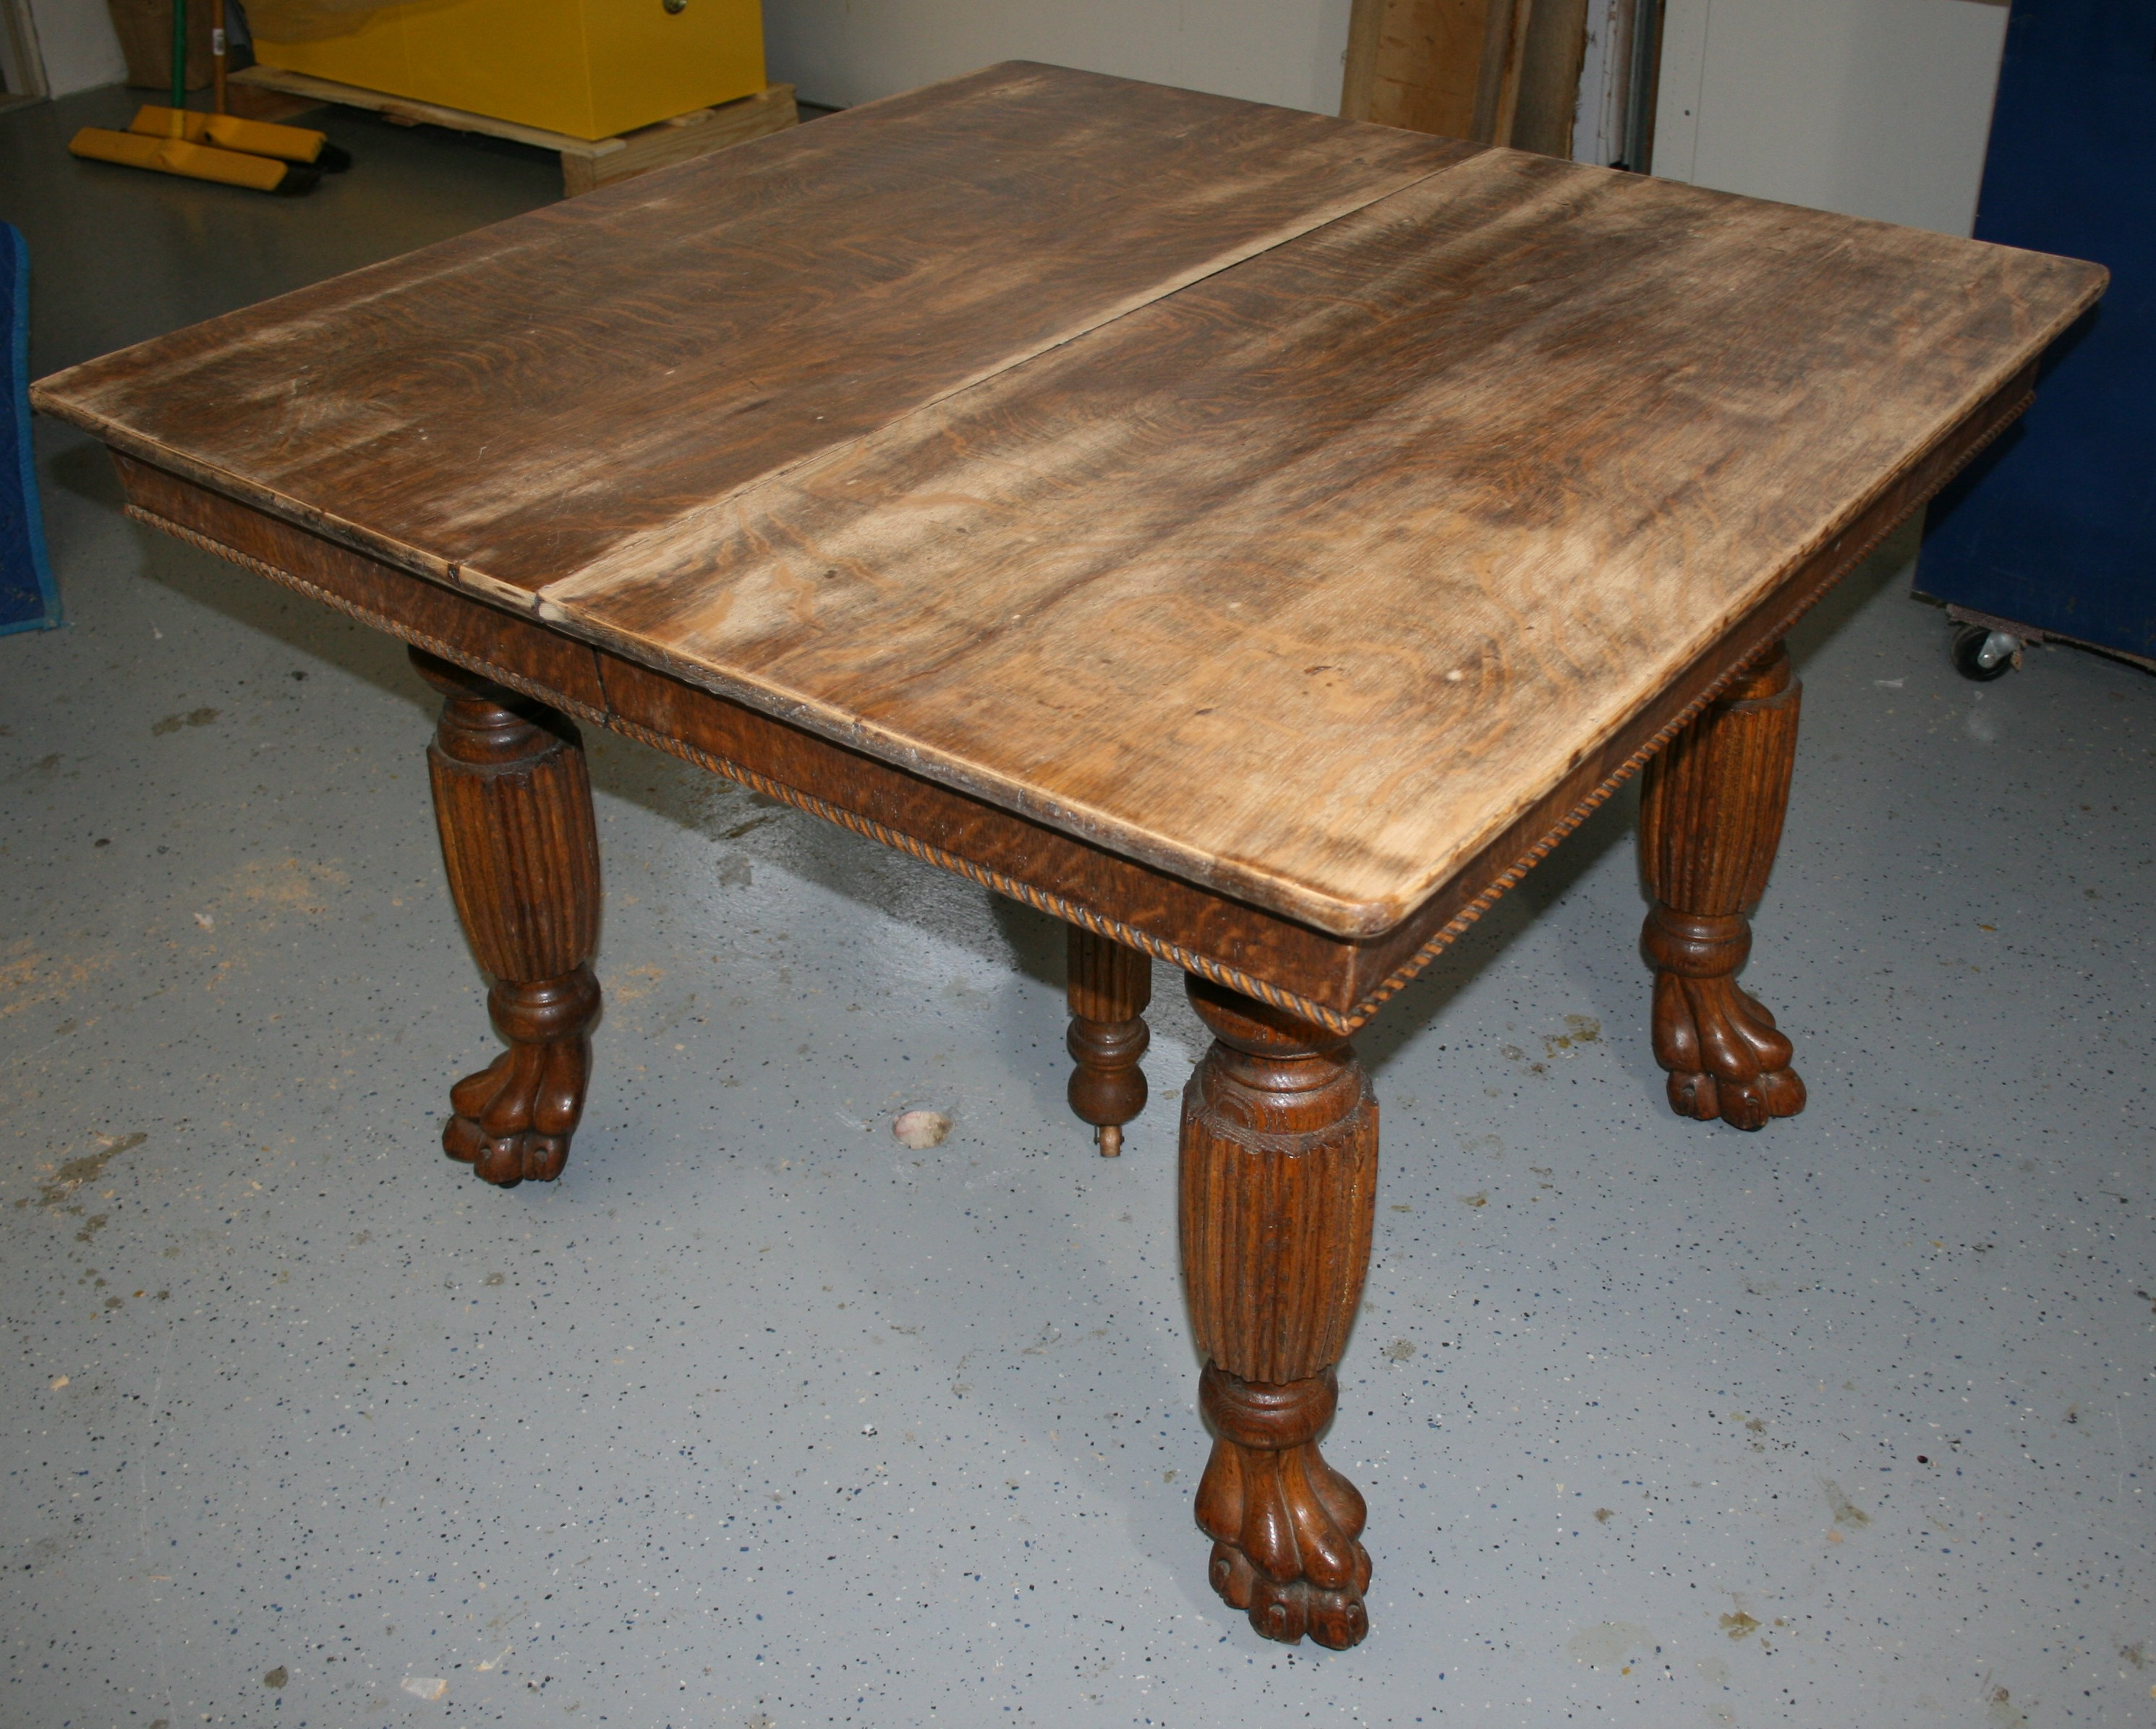 Lighthouse Woodworking - Red oak table top